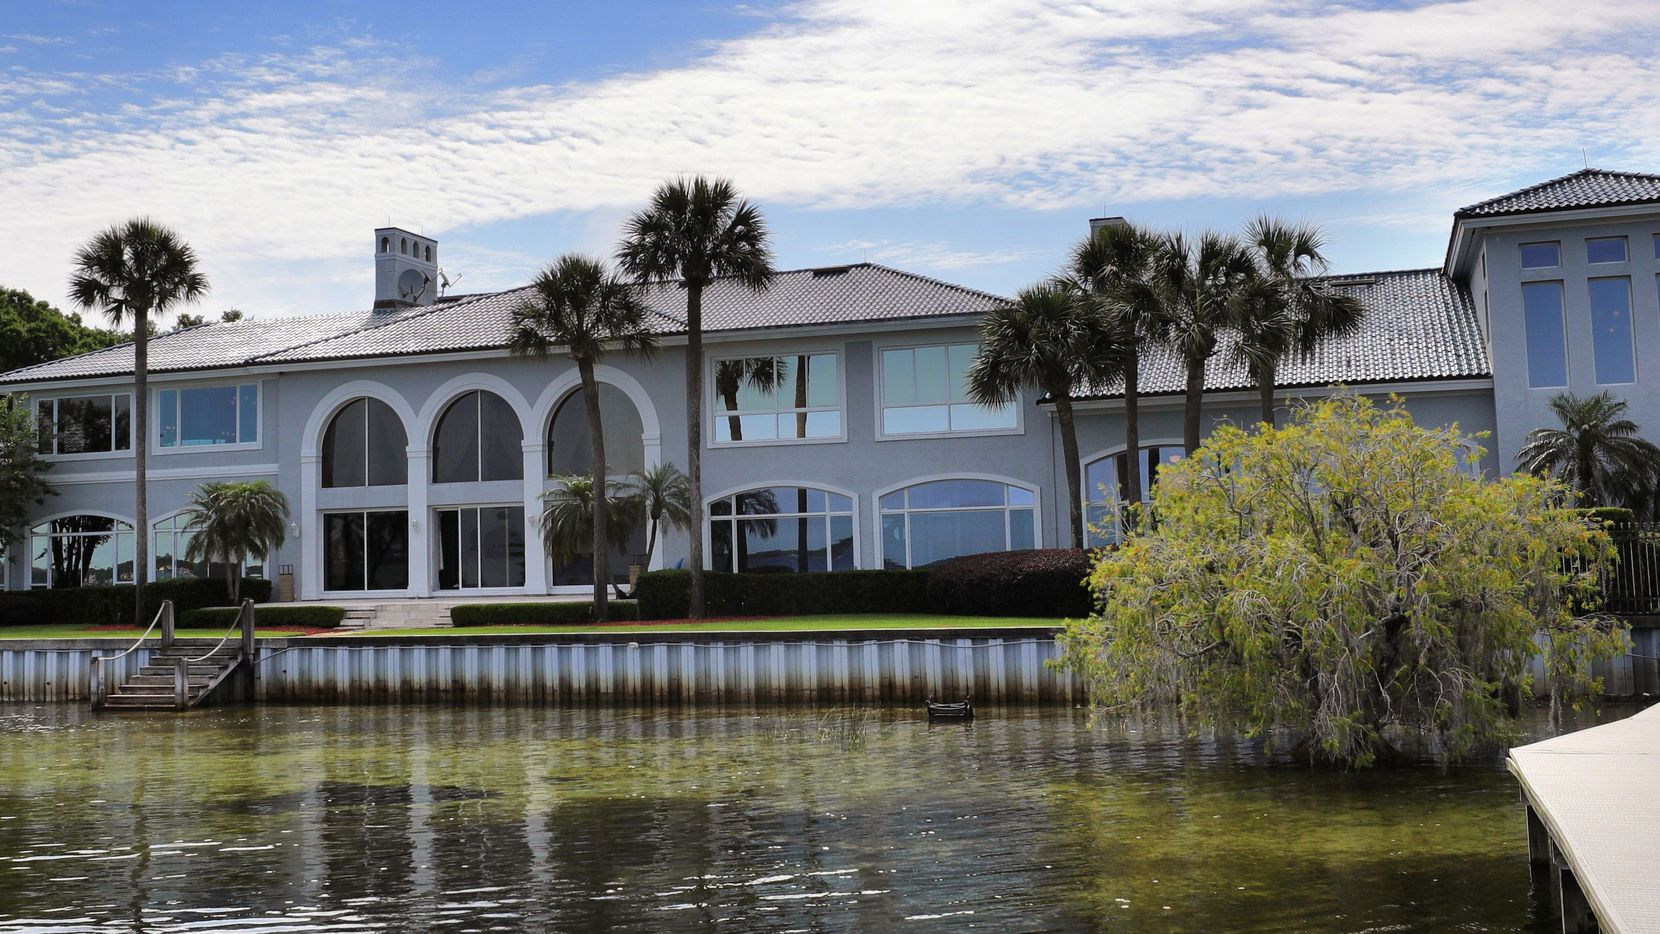 A view from the backyard on Lake Butler of the 31,000-square-foot home currently owned by NBA legend Shaquille O'Neal, located at 9927 Giffin Court, in Windermere, Fla., photographed on April 14. The lakefront house is for sale for 6.5 million and includes 12 bedrooms, 11.5 bathrooms and its own movie theater, cigar bar and an indoor regulation basketball court.